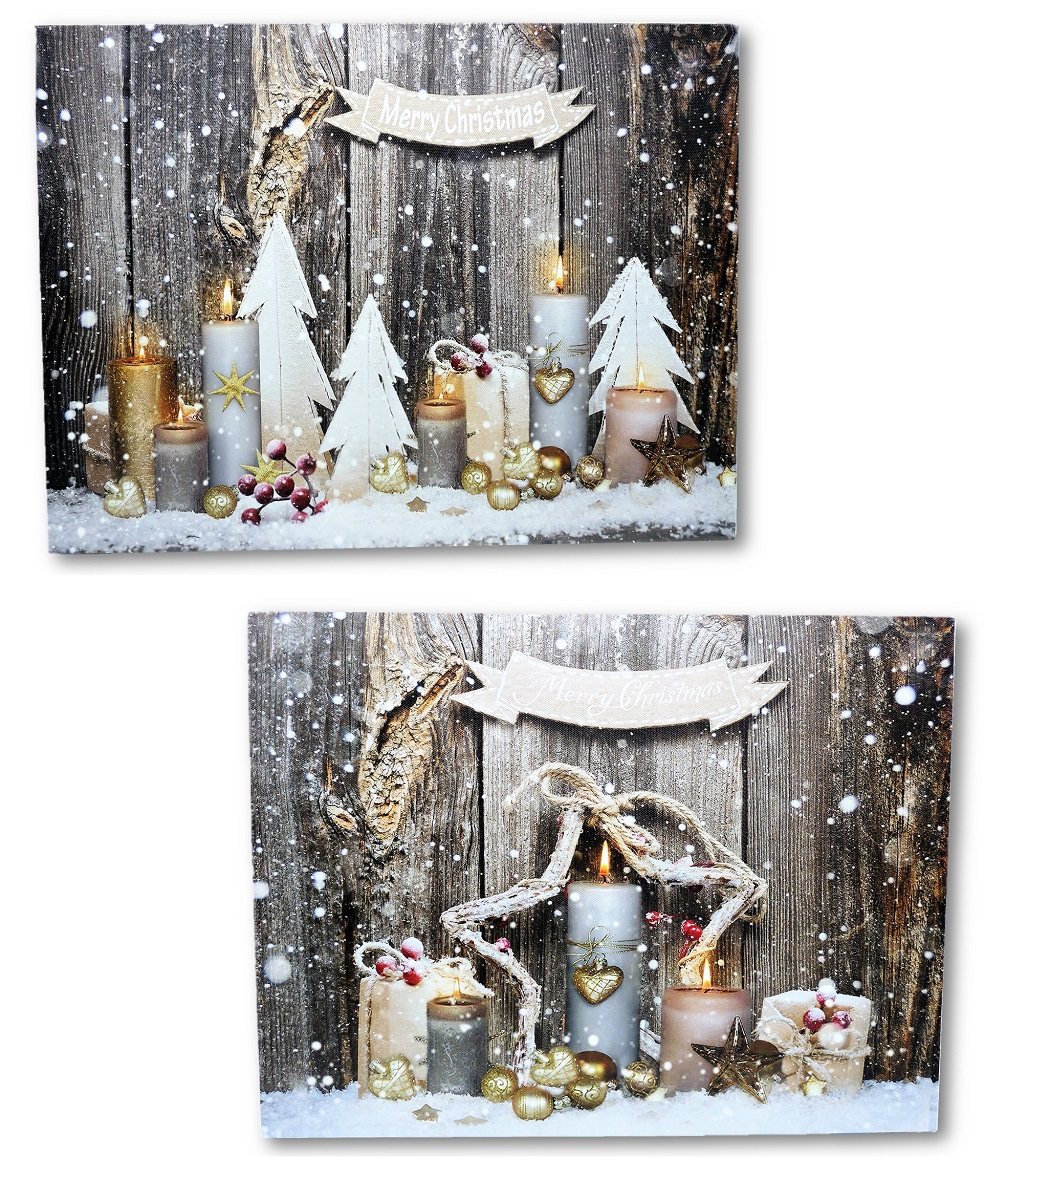 2 wandbilder merry christmas led beleuchtet 40 x 30 cm kerzen weihnachten ebay. Black Bedroom Furniture Sets. Home Design Ideas